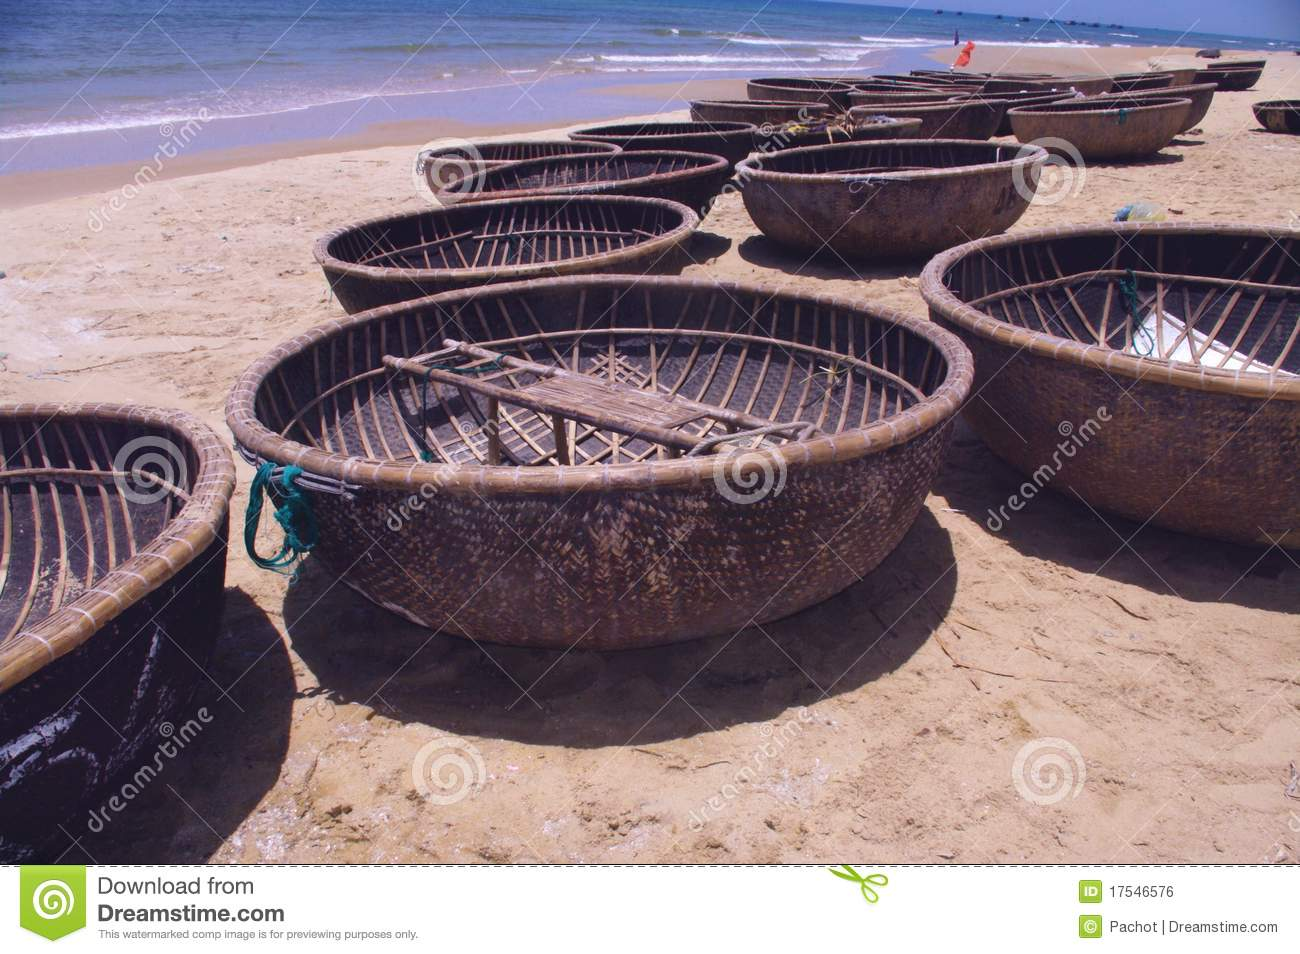 Round basket boat stock photo. Image of typical, braided - 17546576